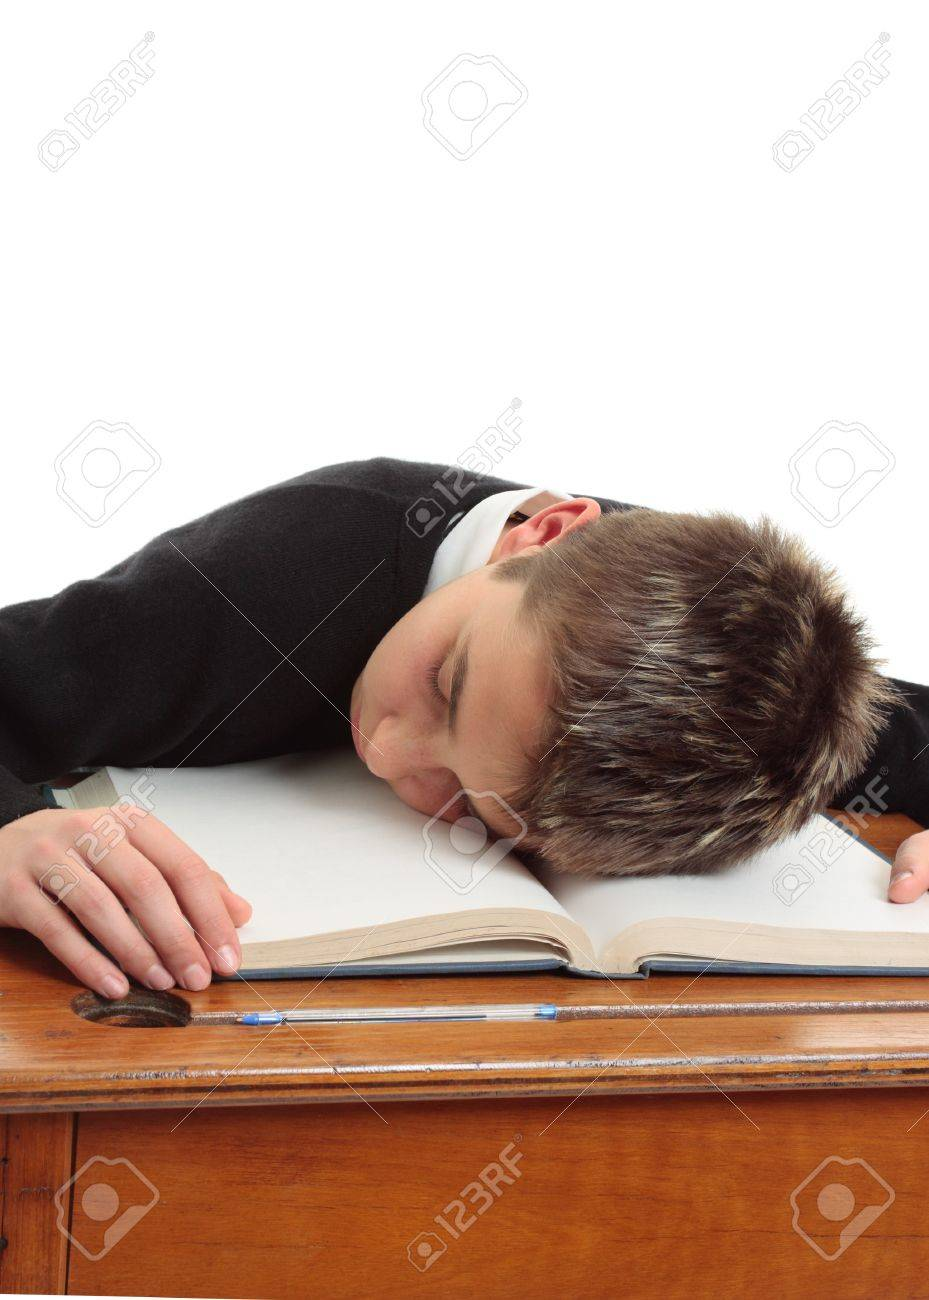 Tired, bored, weary, stressed school student at desk. Stock Photo - 7277685